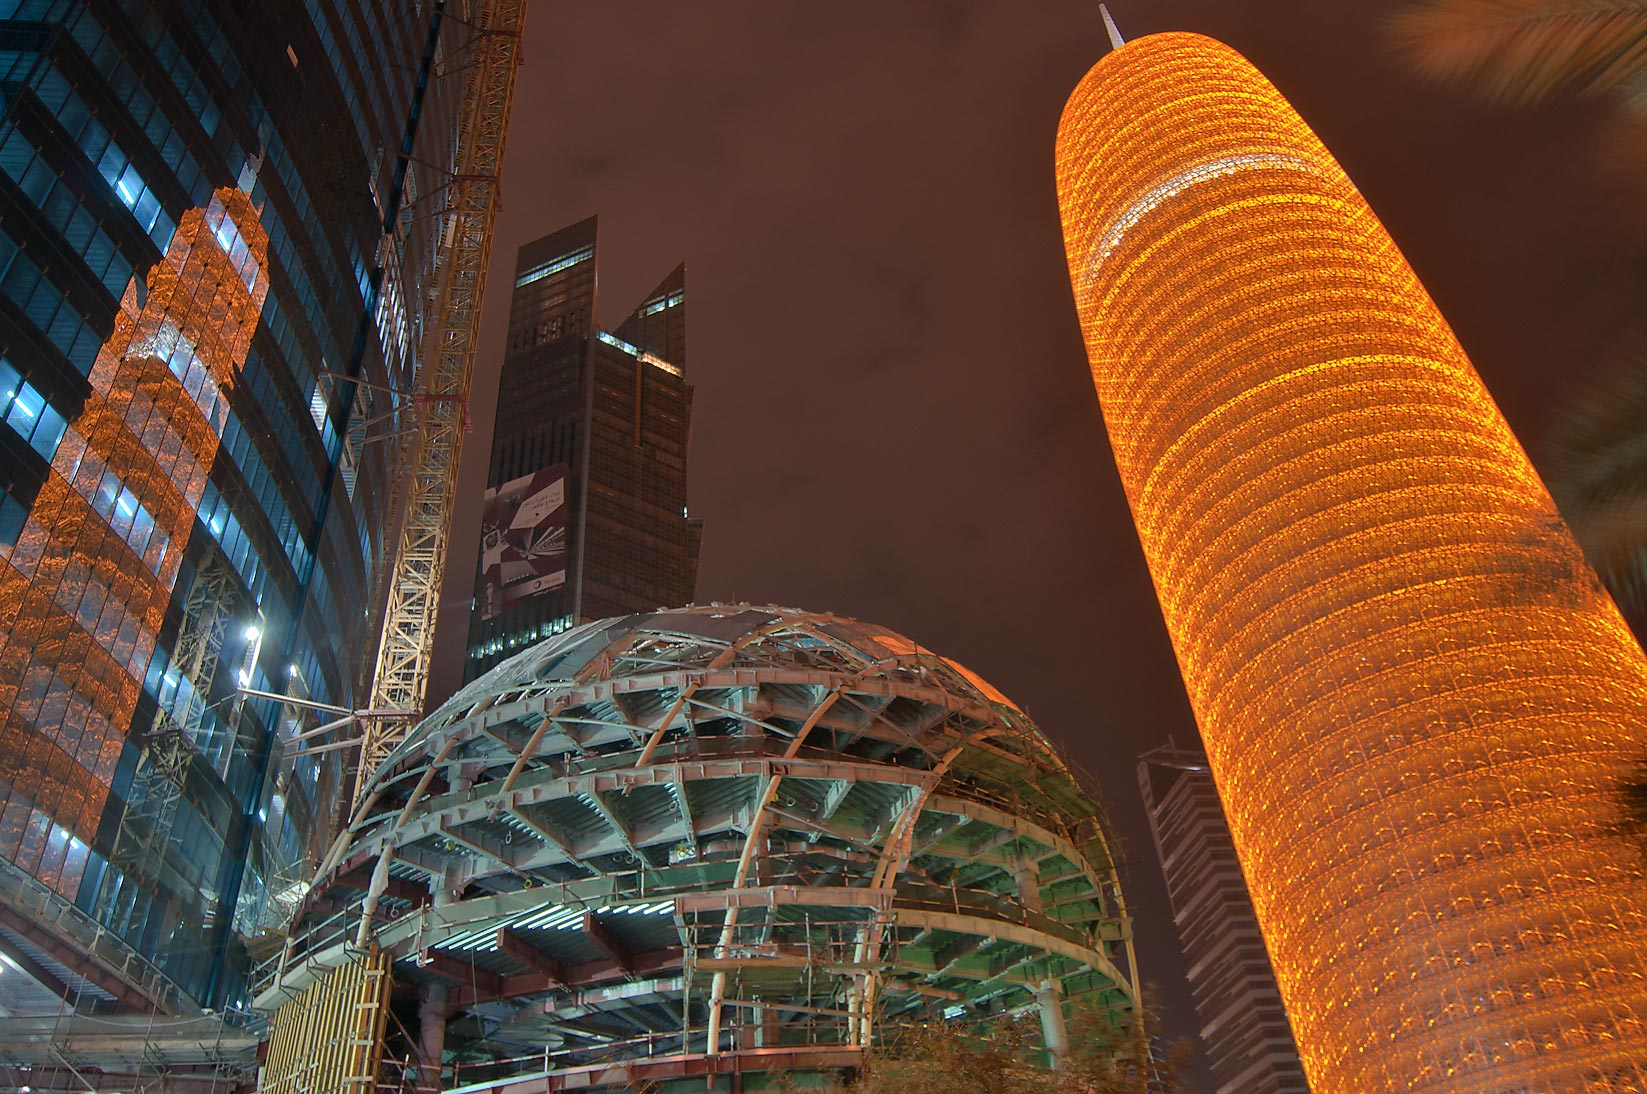 Spherical structure of World Trade Center (WTC...Qatar Tower in West Bay. Doha, Qatar